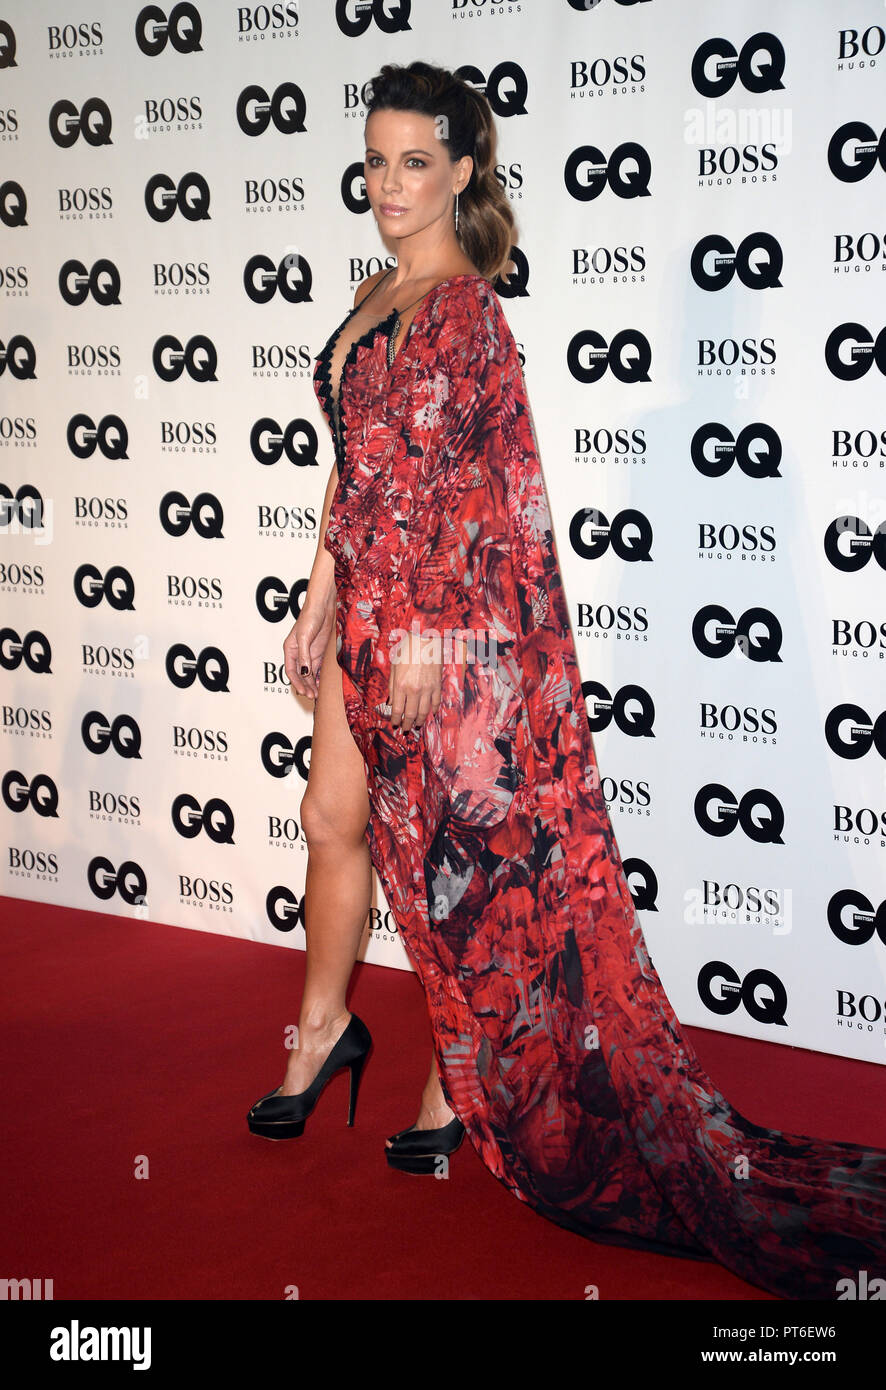 GQ Men Of The Year Awards at The Tate Modern  Featuring: Kate Beckinsale Where: London, United Kingdom When: 05 Sep 2018 Credit: Tony Oudot/WENN - Stock Image